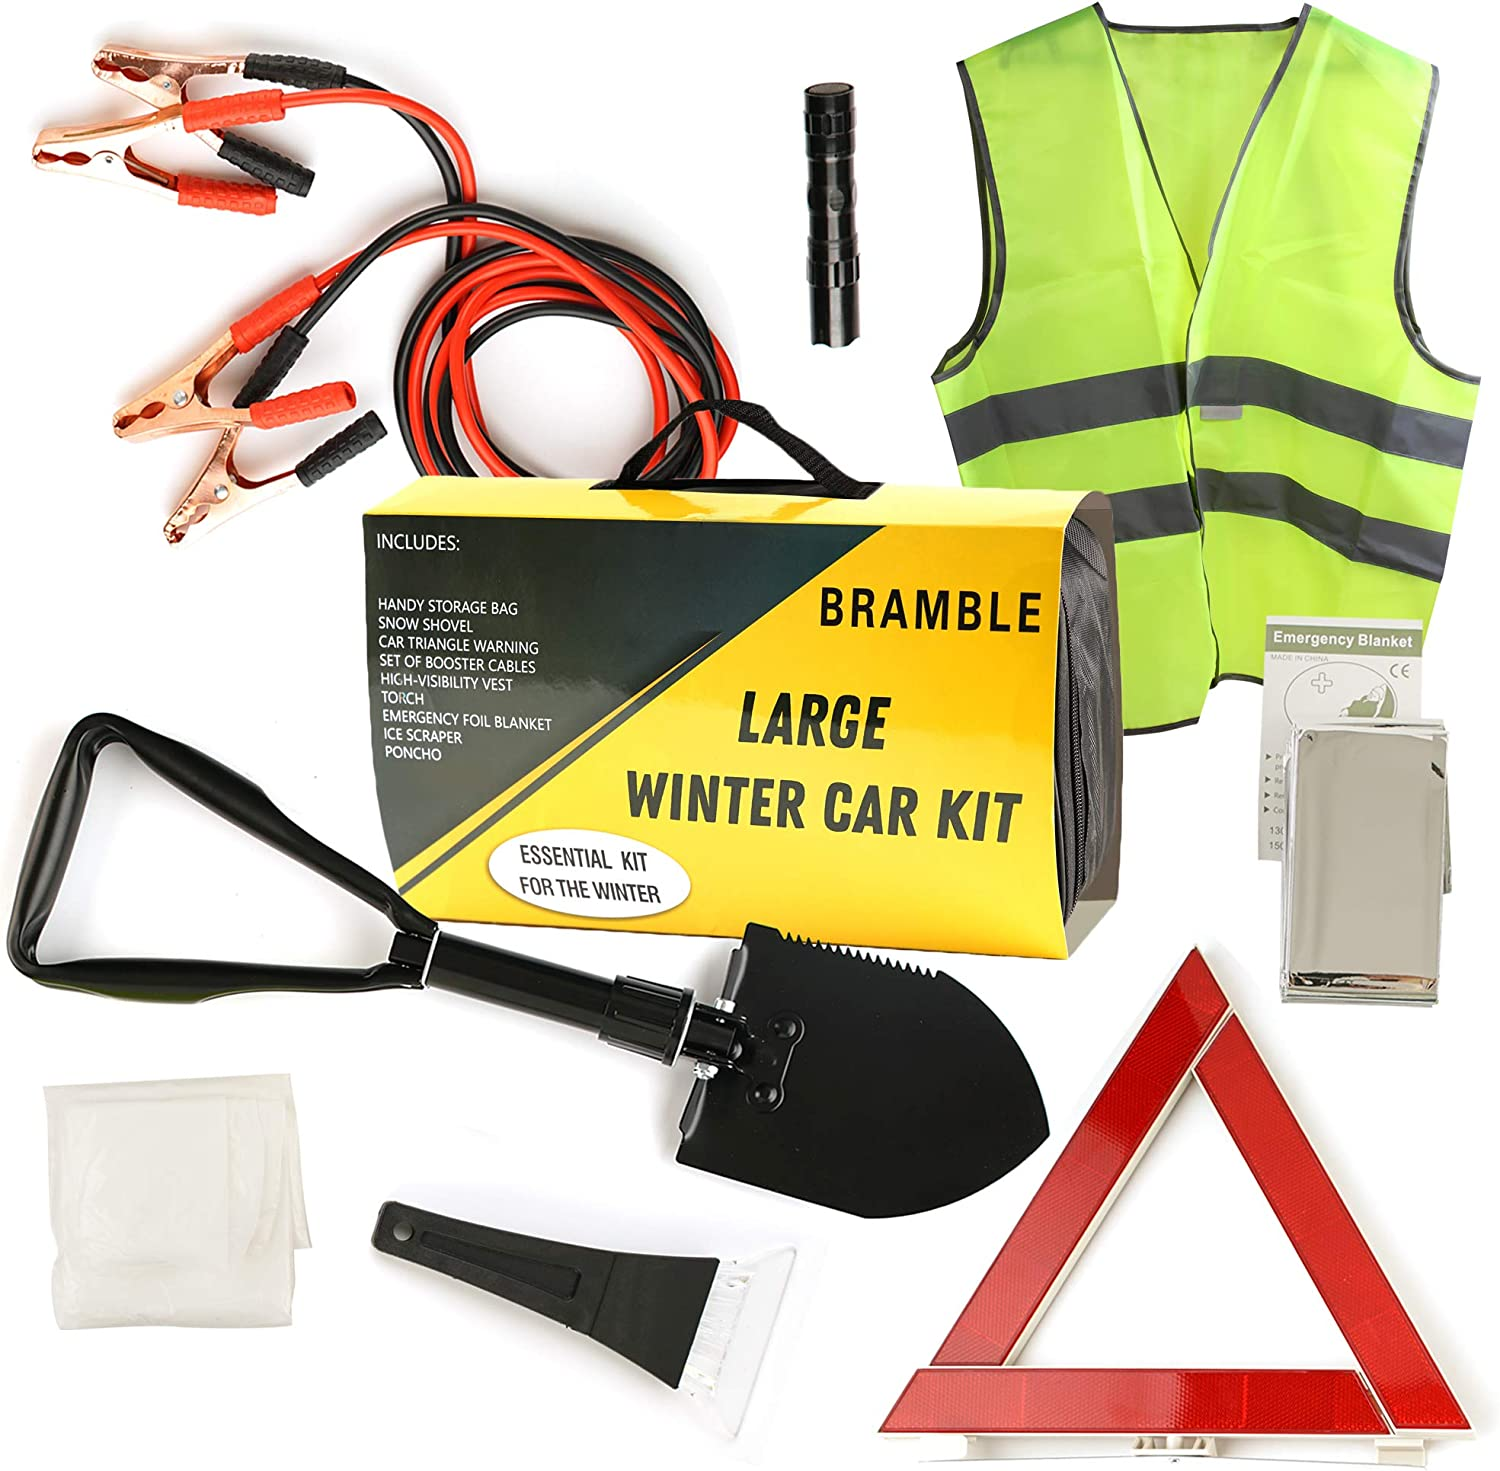 8en1 Kit de Emergencia Coche Invierno| Asistencia en Carretera, Kit Supervivencia de Seguridad| Cables de Arranque Triángulo Advertencia Chaleco Reflectante Chubasquero Pala Plegable Manta Emergencia